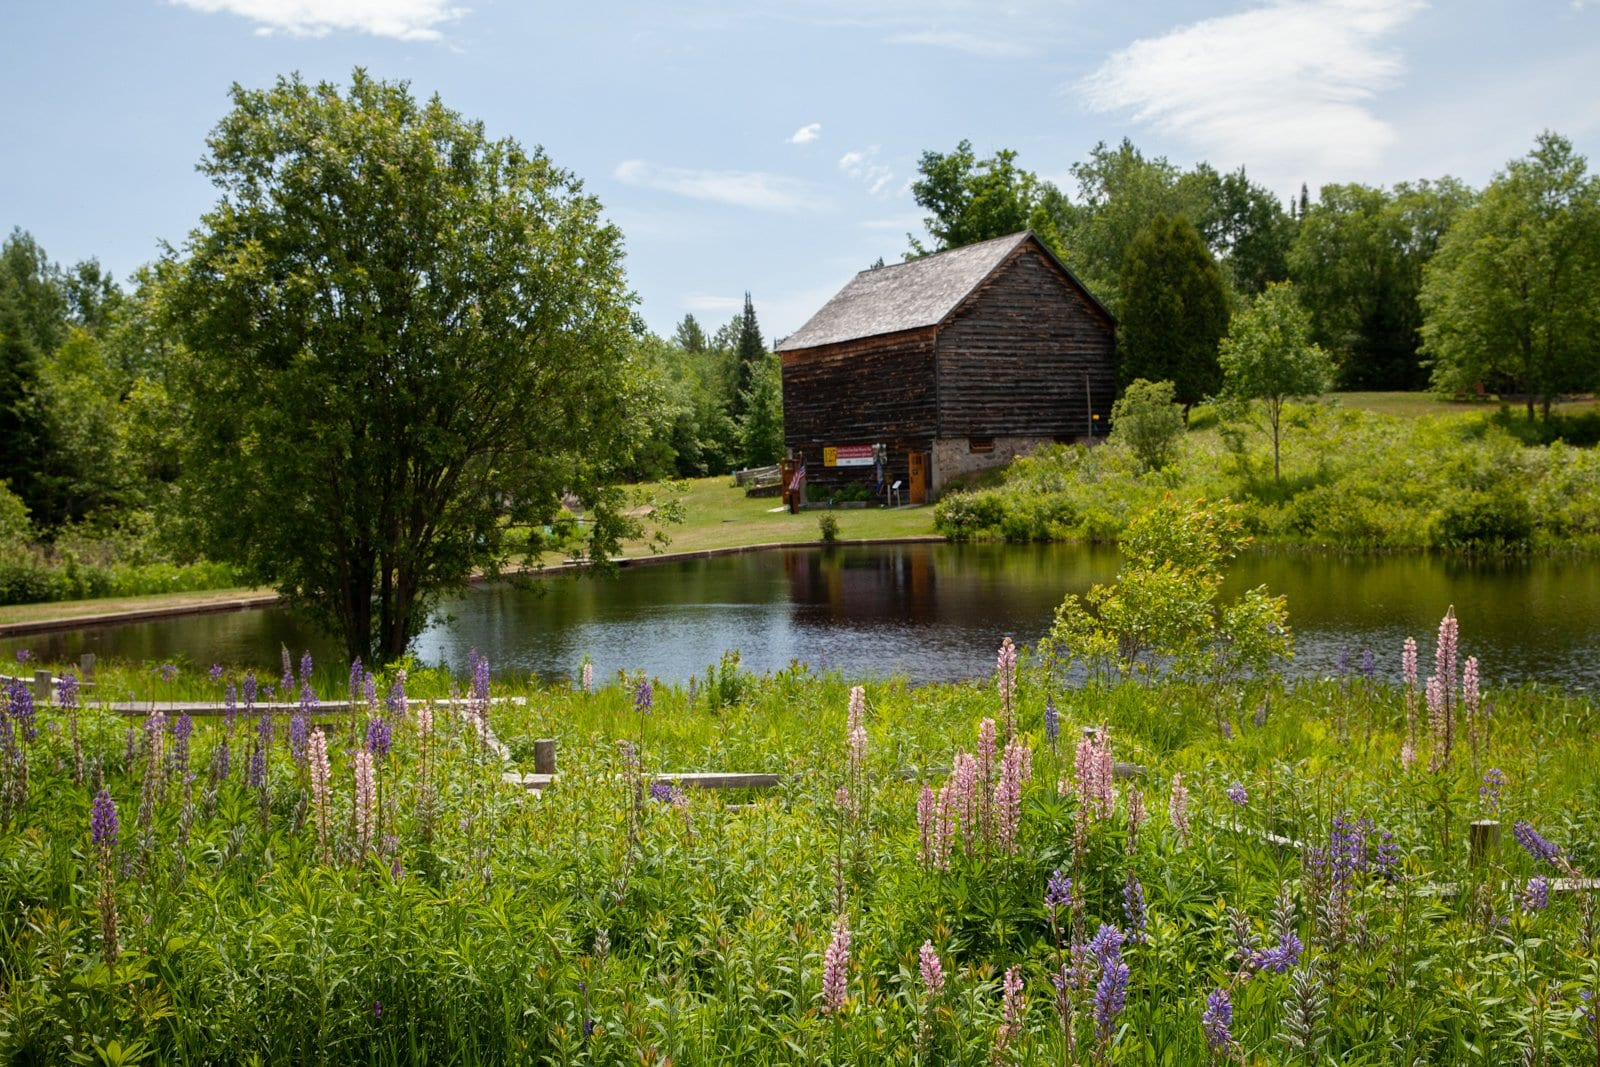 The barn and pond at John Brown Farm State Historic Site.